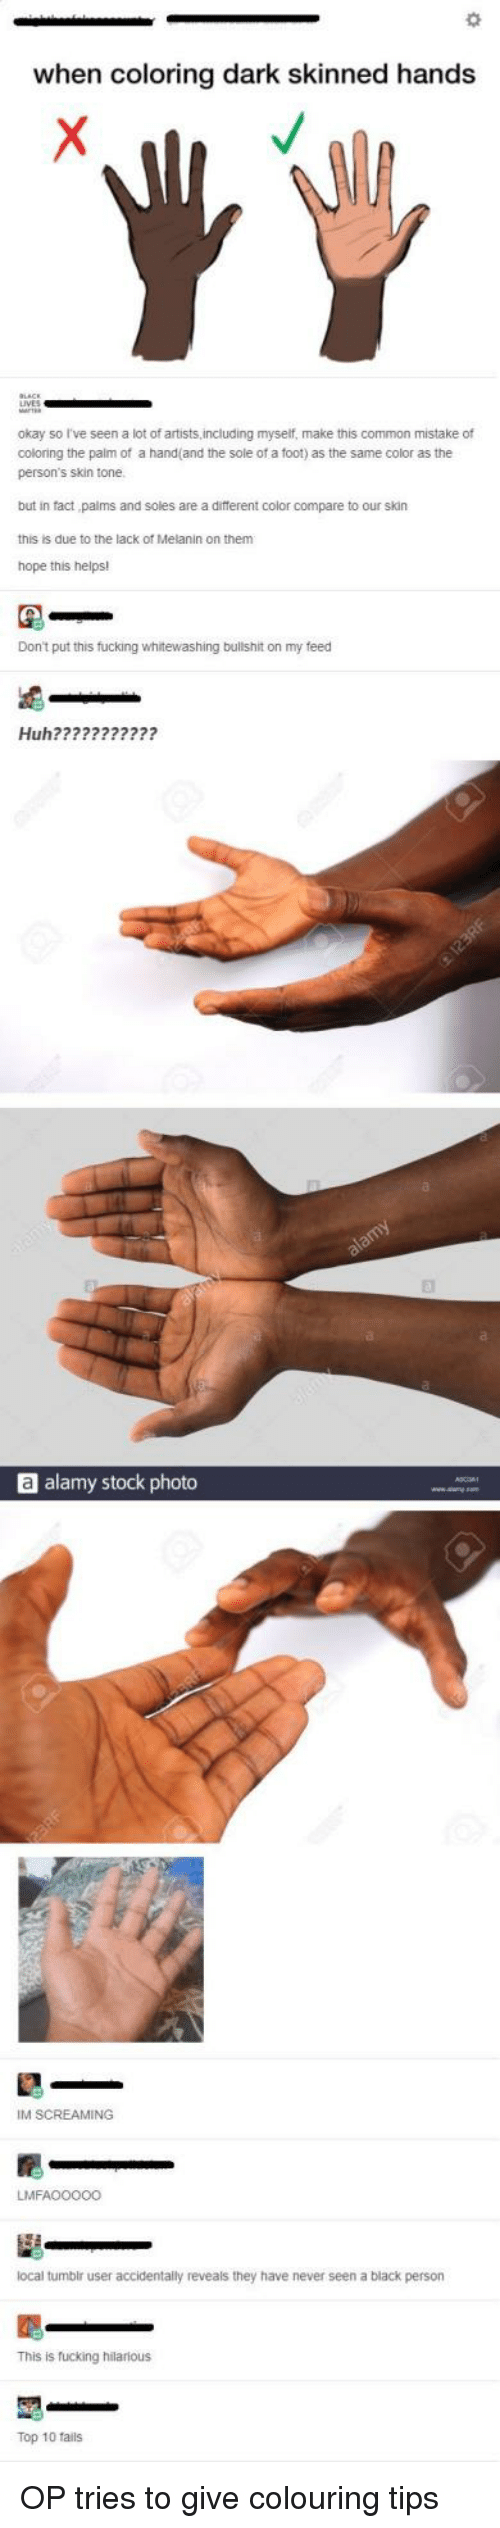 hope this helps: when coloring dark skinned hands  okay so I've seen a lot of artists,including myself, make this common mistake of  coloring the palm of a hand(and the sole of a foot) as the same color as the  person's skin tone  but in fact paims and soles are a different color compare to our skin  this is due to the lack of Melanin on them  hope this helps!  Don't put this fucking whitewashing bullshit on my feed  Huh???????????  a alamy stock photo  IM SCREAMING  LMFAO0000  local tumbir user accidentally reveals they have never seen a black person  This is fucking hilarious  Top 10 fails OP tries to give colouring tips